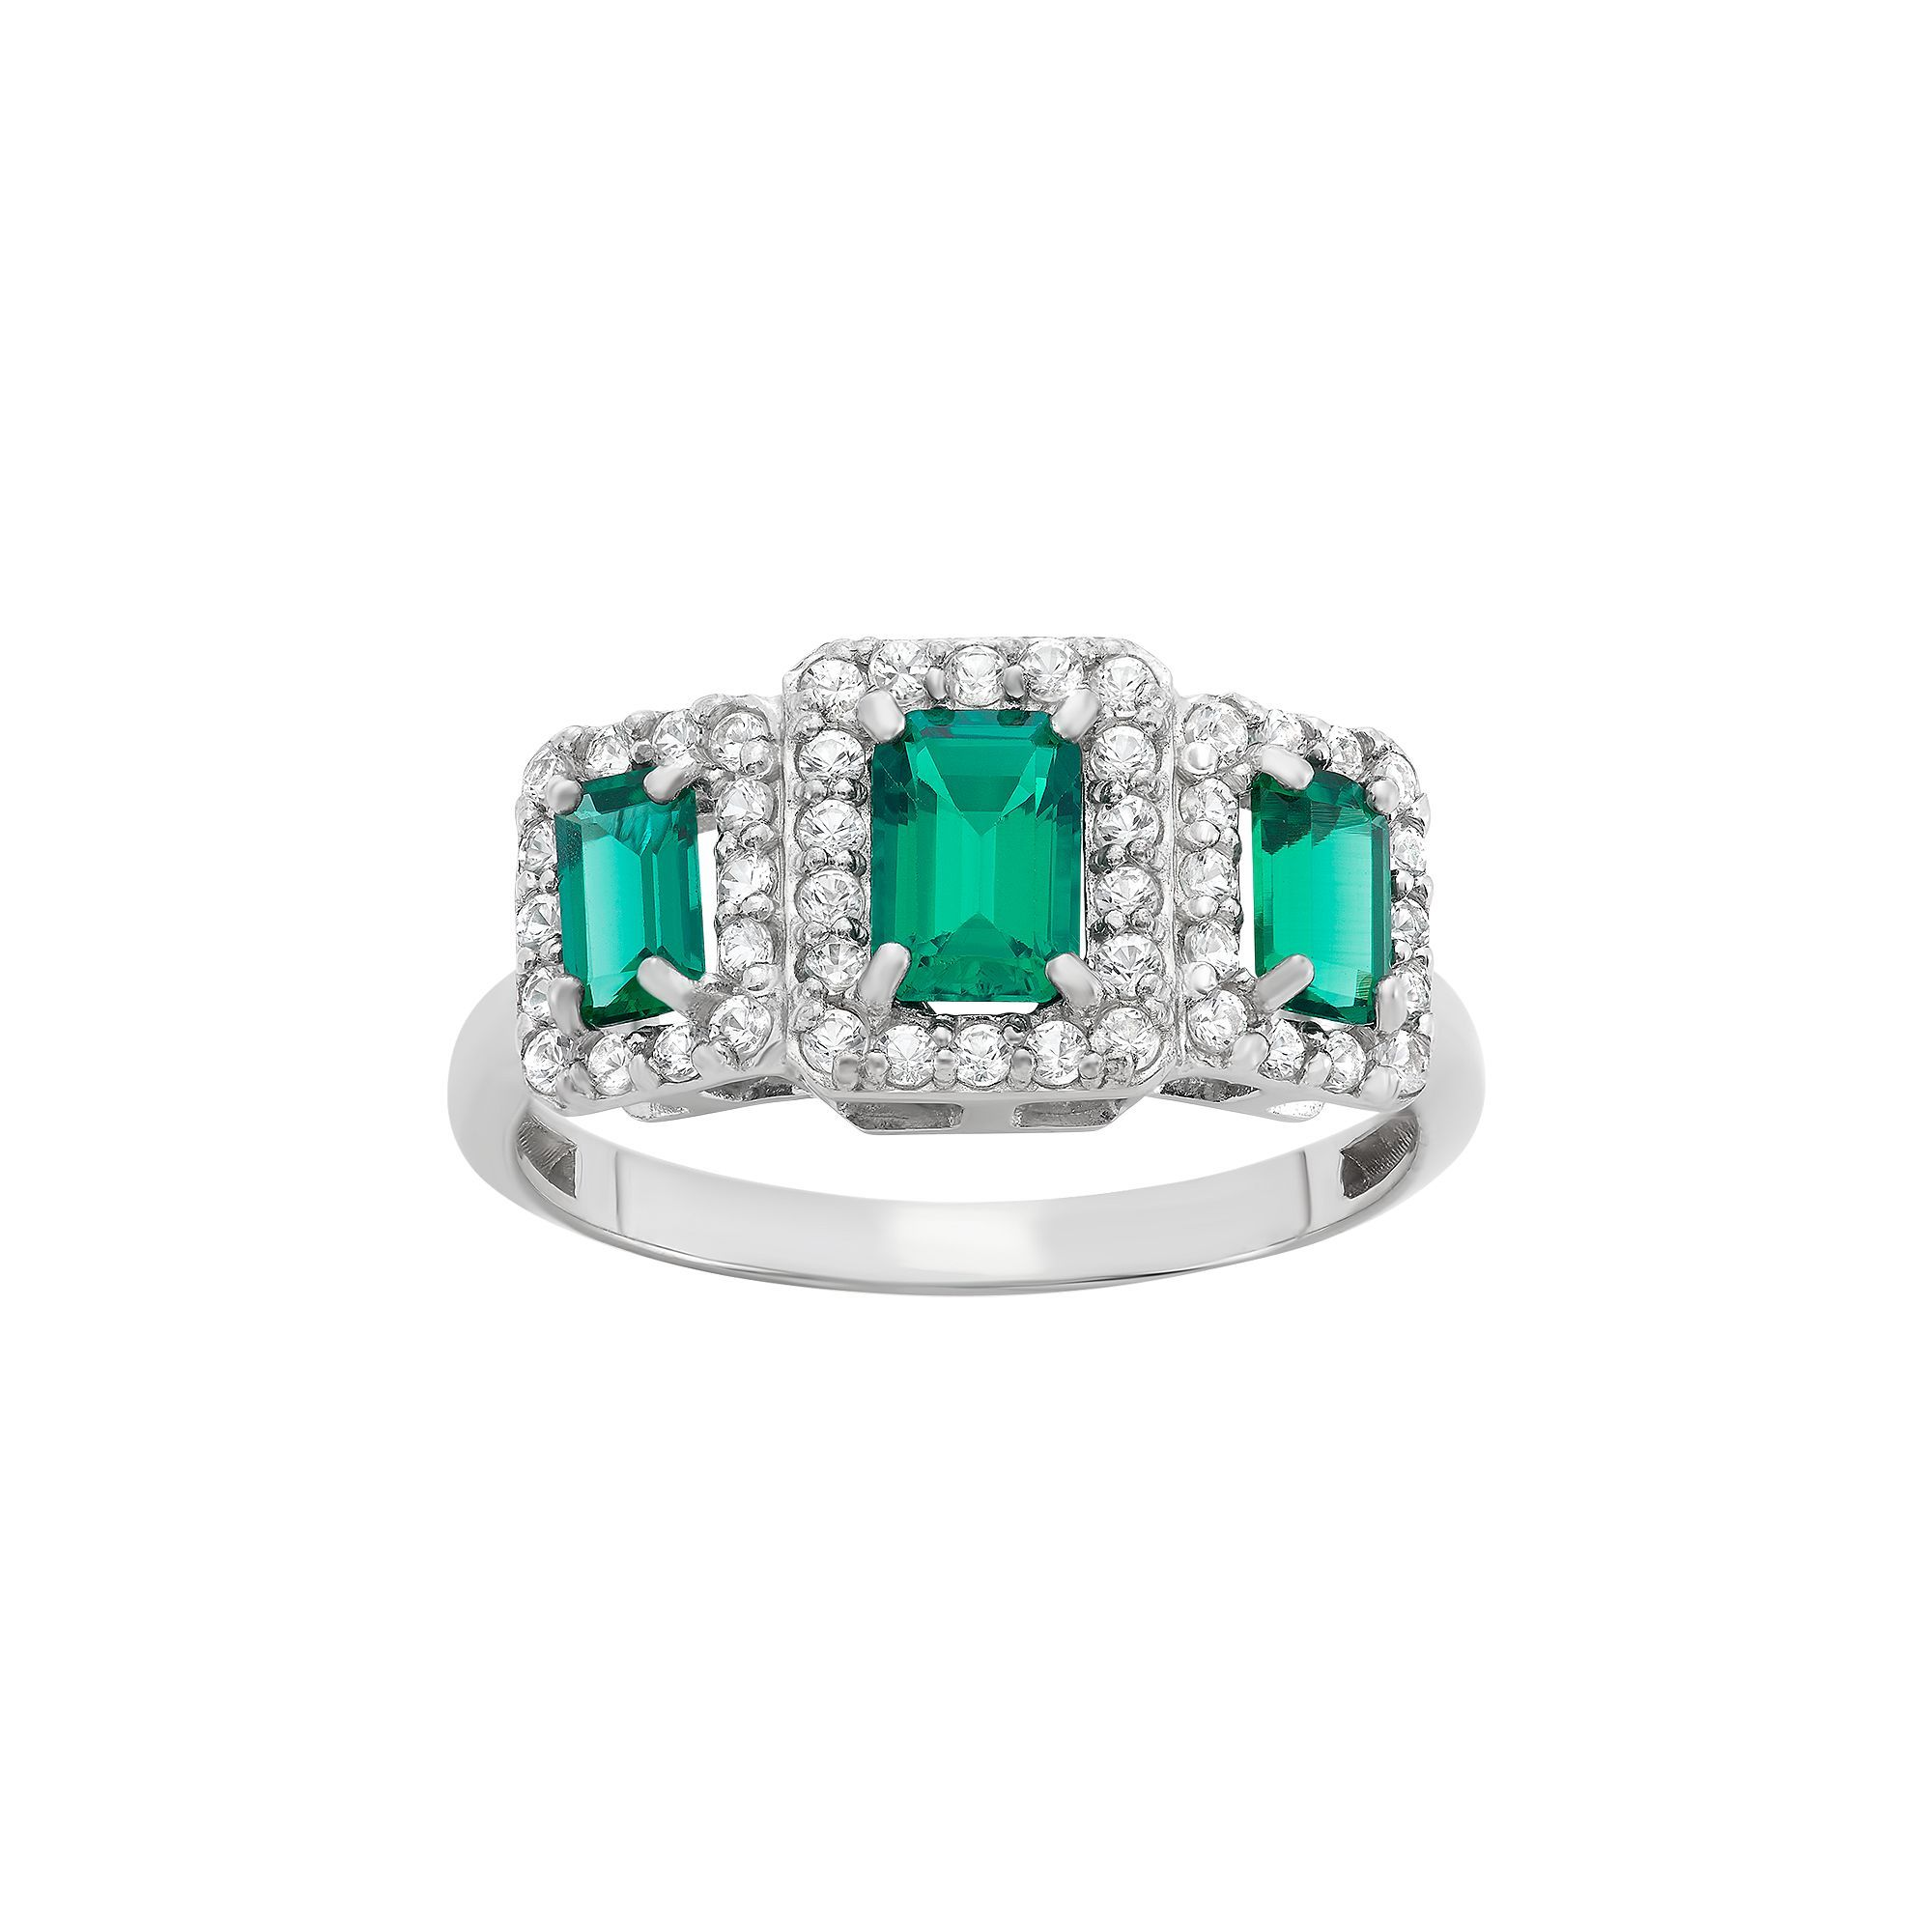 image avanti white diamond rings gold stone emerald and three ring womens dress